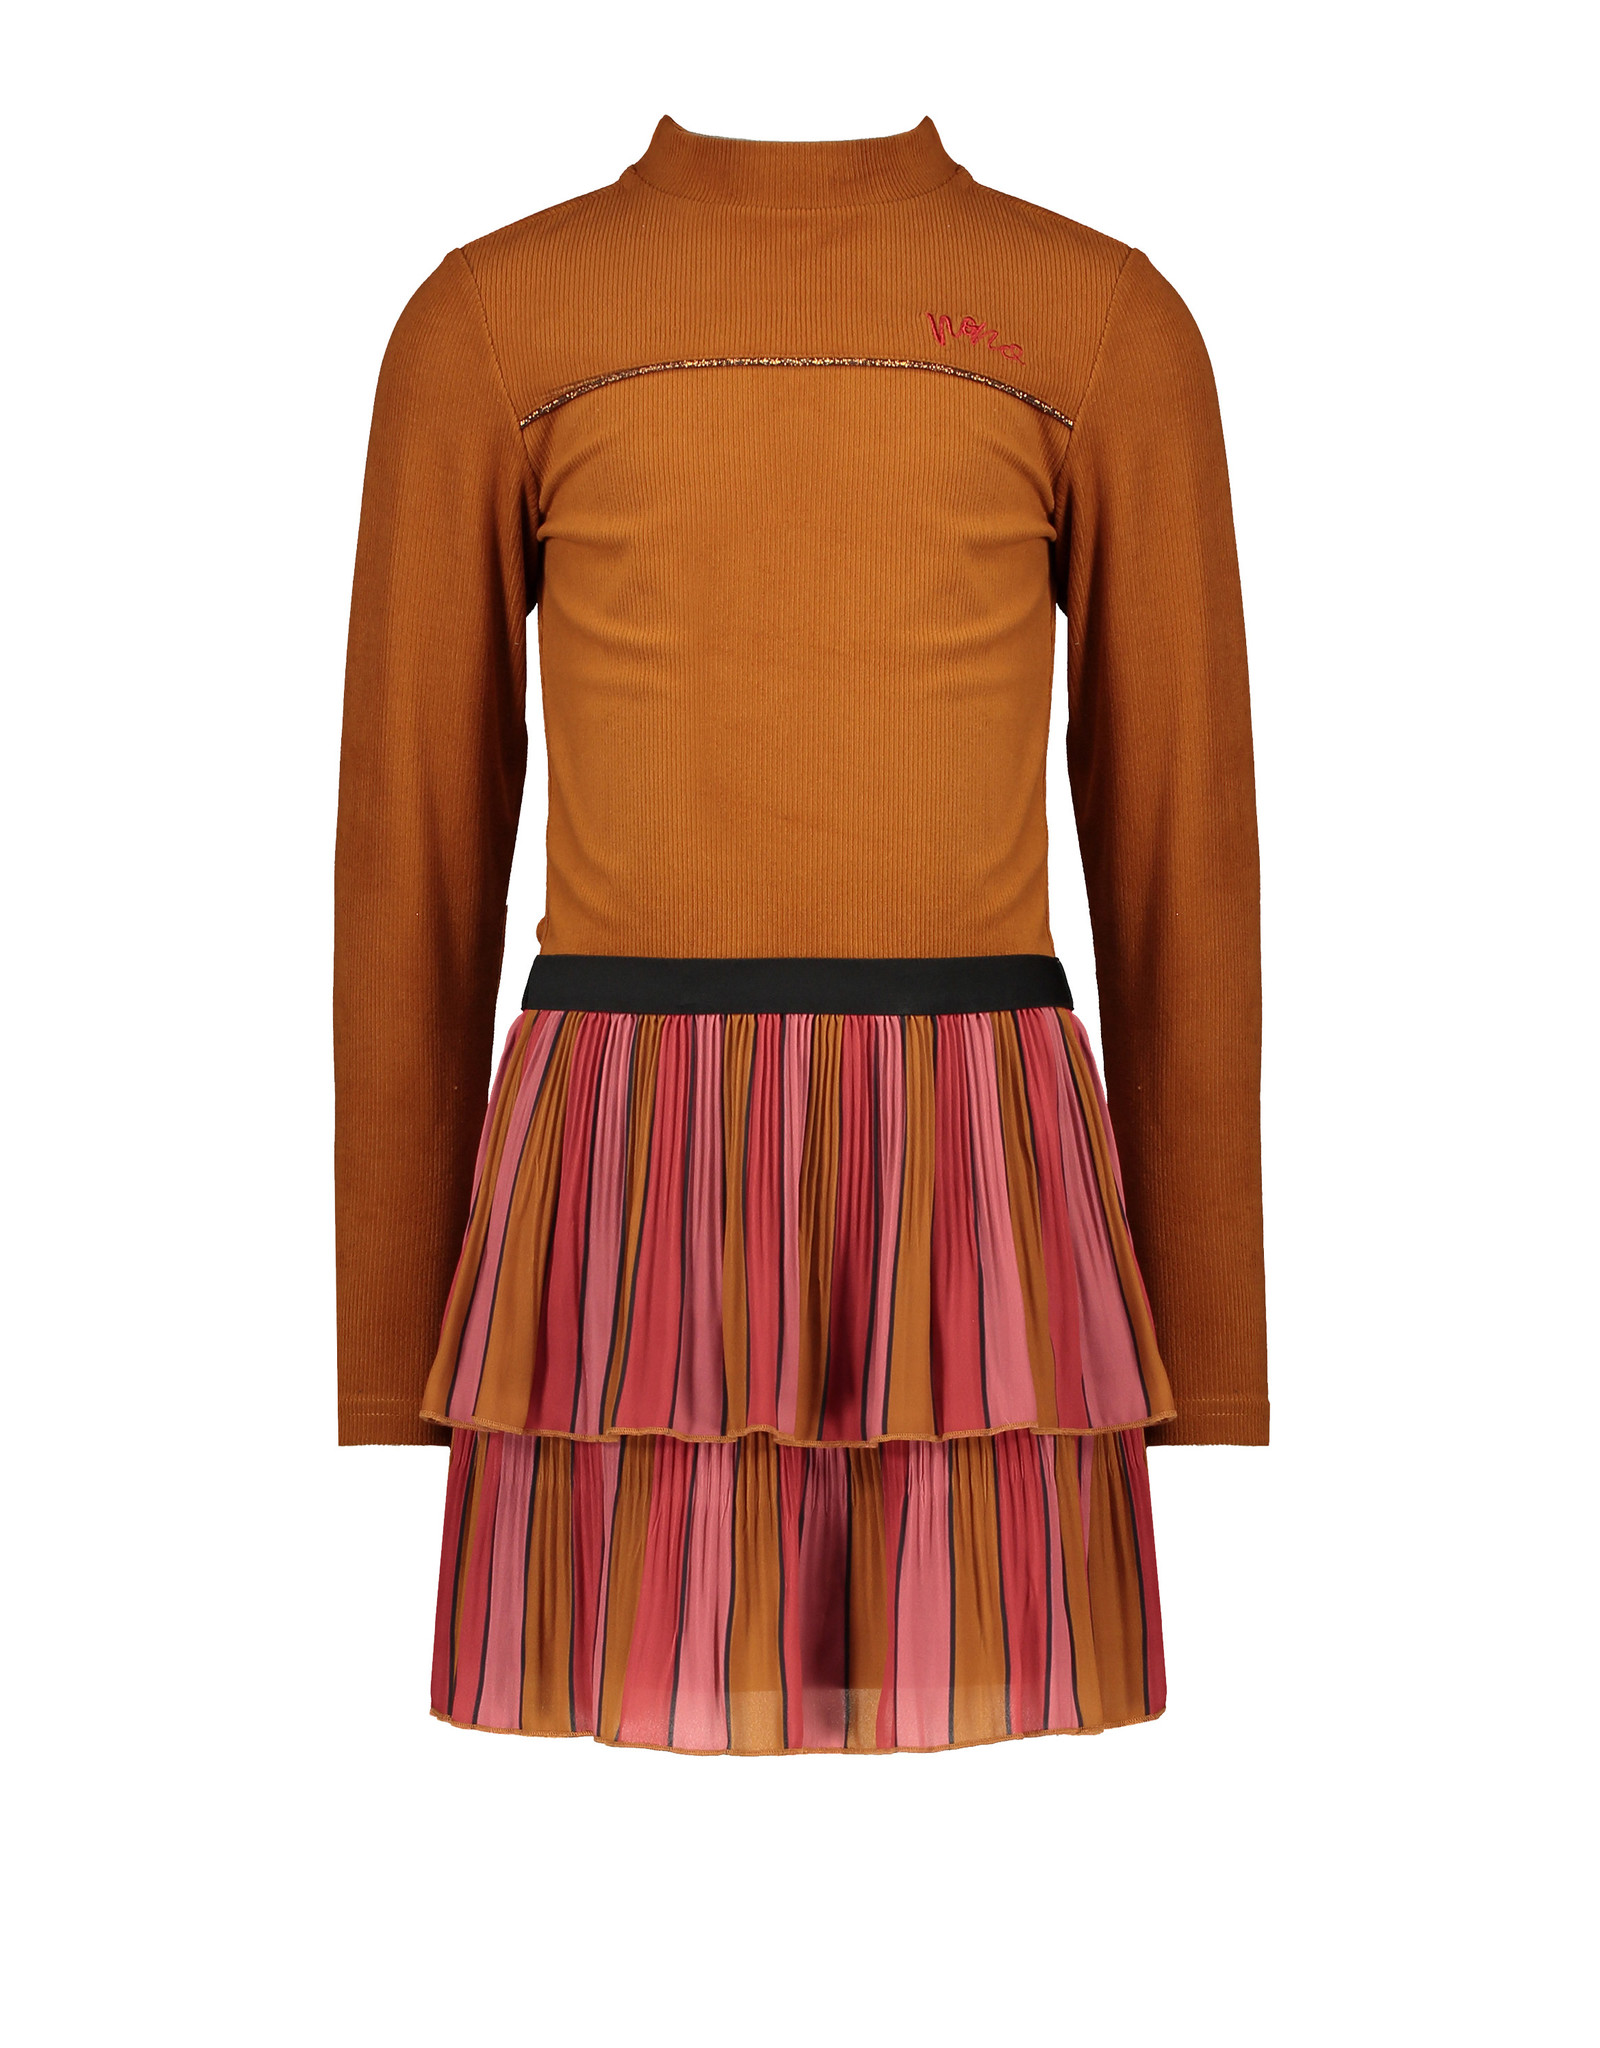 Nono Mika B combi dress with Velours rib top+ recycled PL skirt